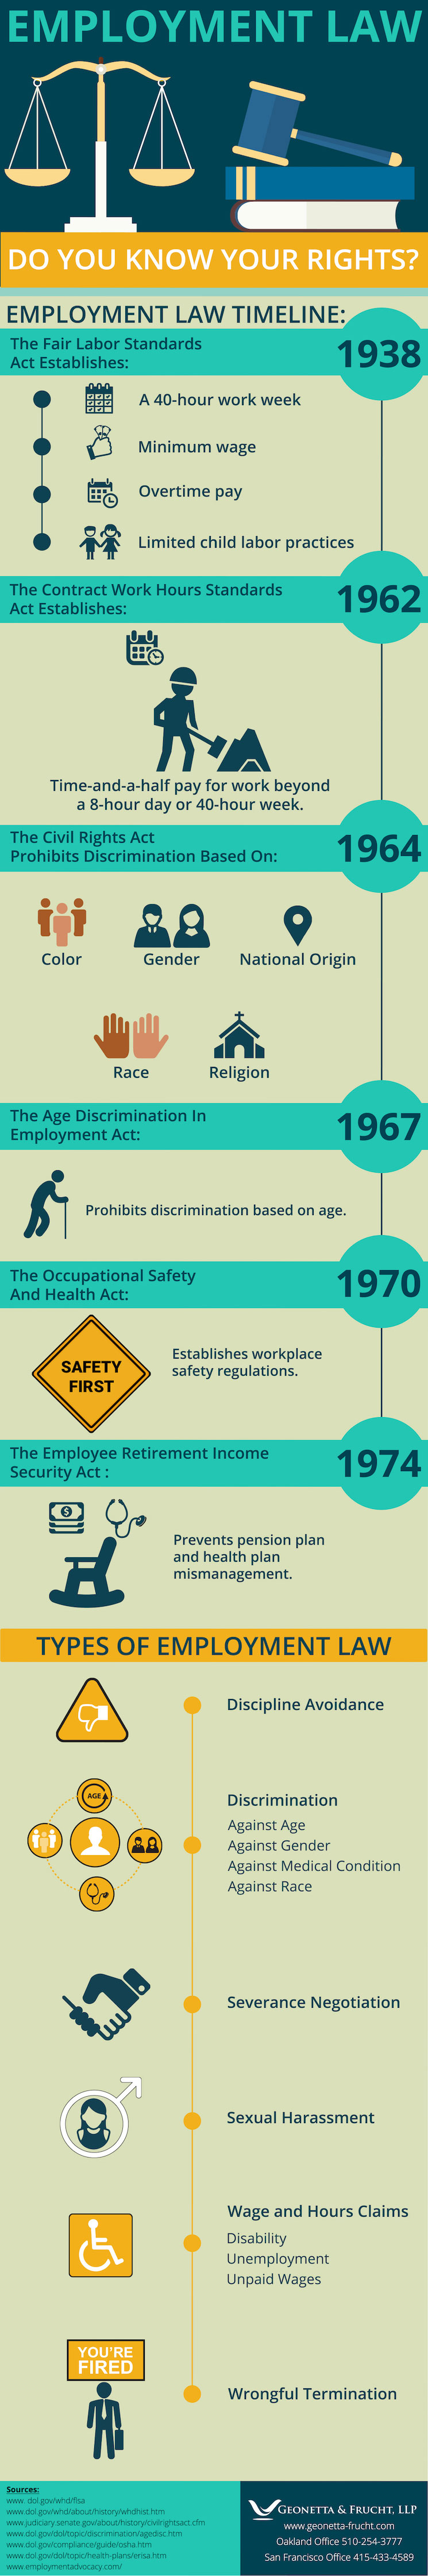 employment-laws